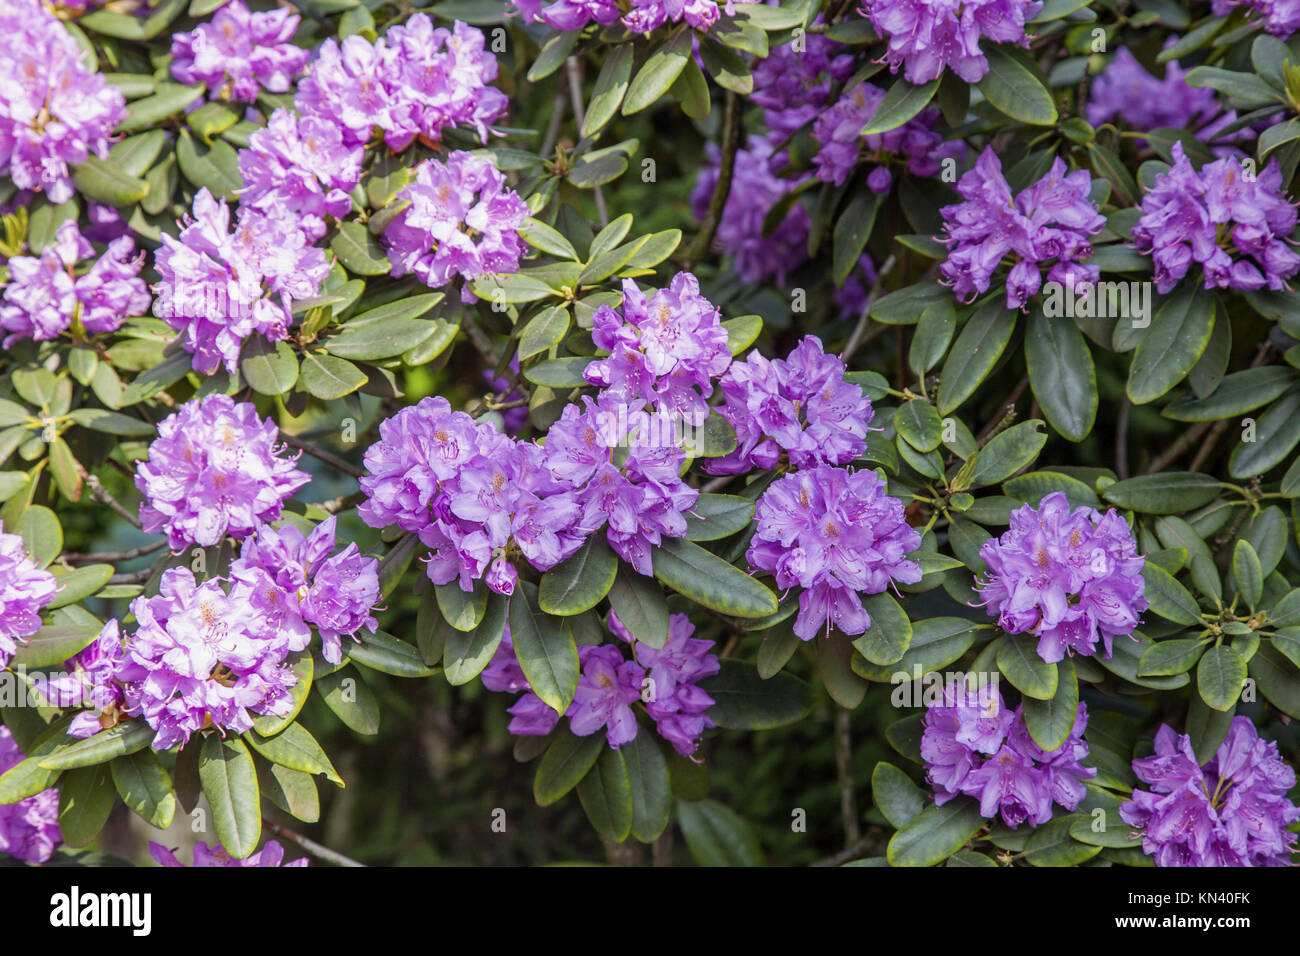 Attractive broadleaf evergreen shrub with lavender flowers in spring attractive broadleaf evergreen shrub with lavender flowers in spring mightylinksfo